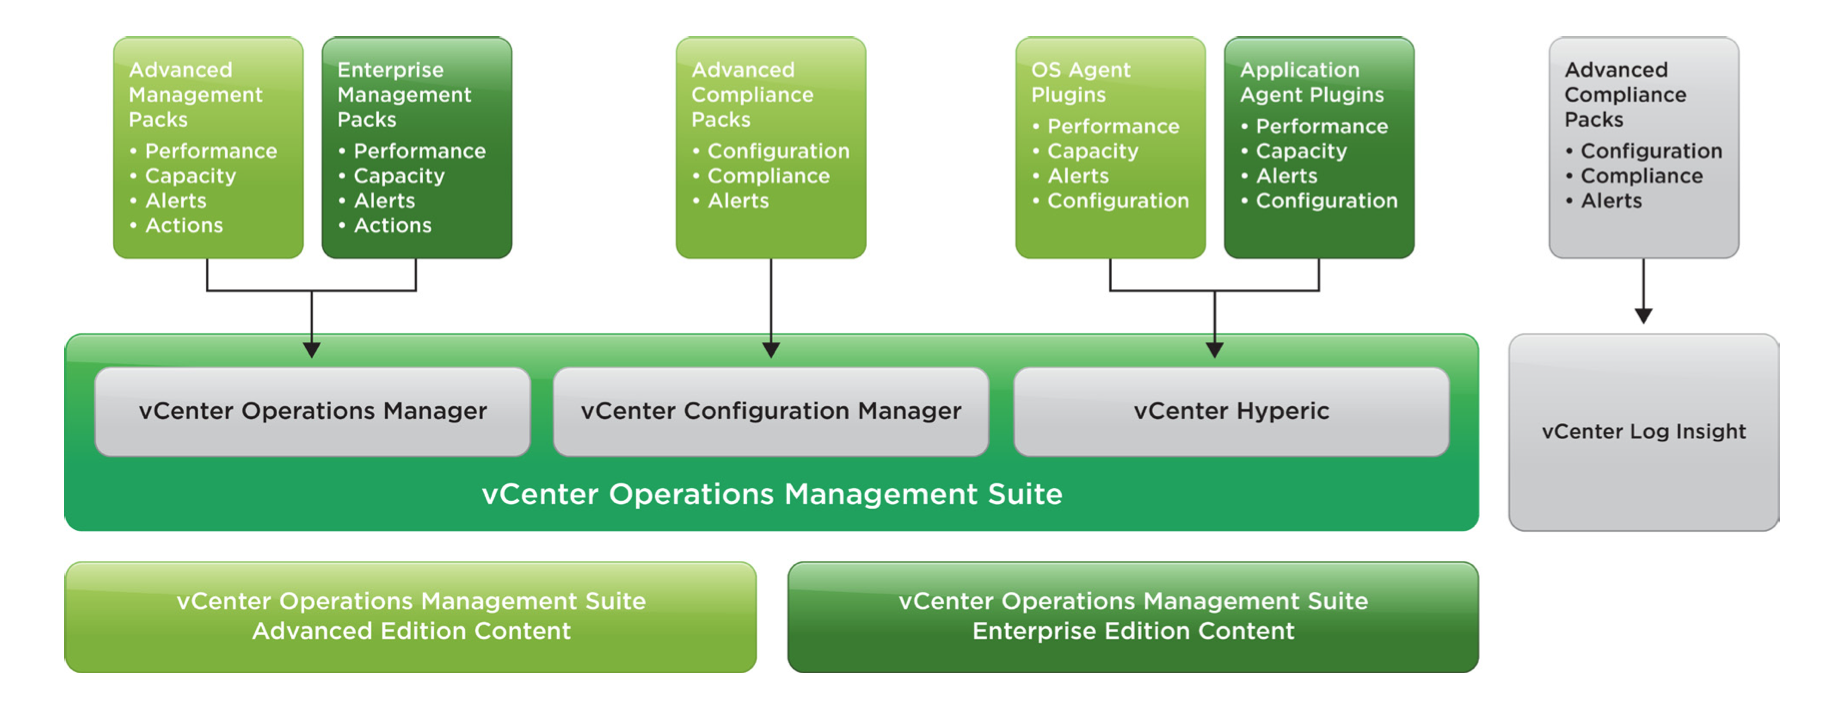 to what extend is operations management Operations management is an area of management concerned with designing and controlling the process of production and redesigning business operations in the production of goods or services it involves the responsibility of ensuring that business operations are efficient in terms of using as few resources as needed and effective in terms of meeting customer requirements.